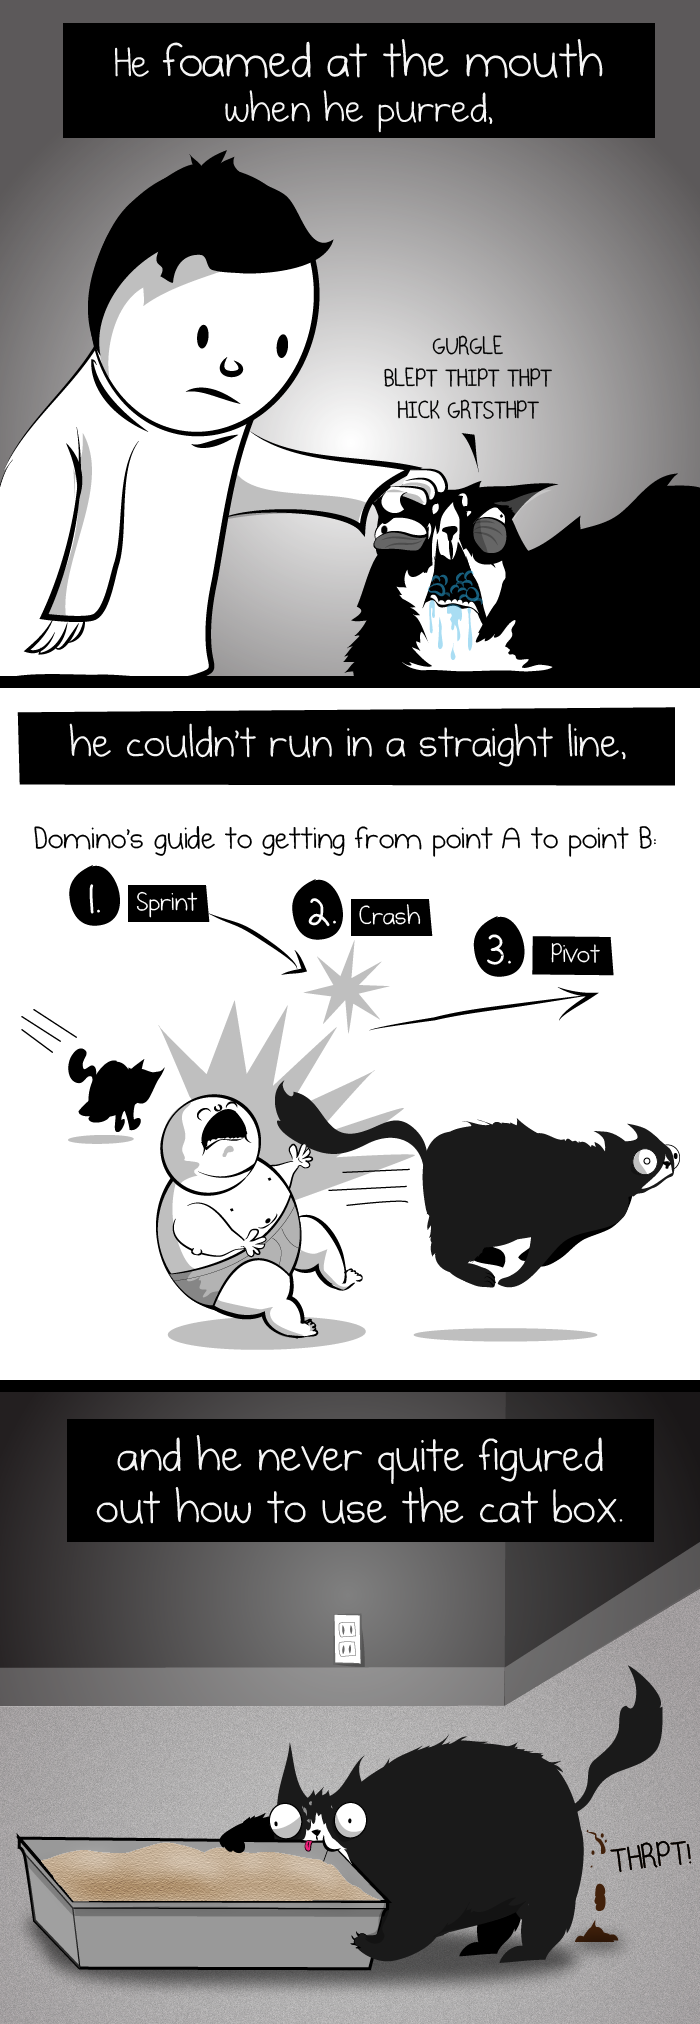 When your house is burning down, you should brush your teeth - The Oatmeal; This is a GREAT little comic story, a true life story, very well done. Funny and poignant.